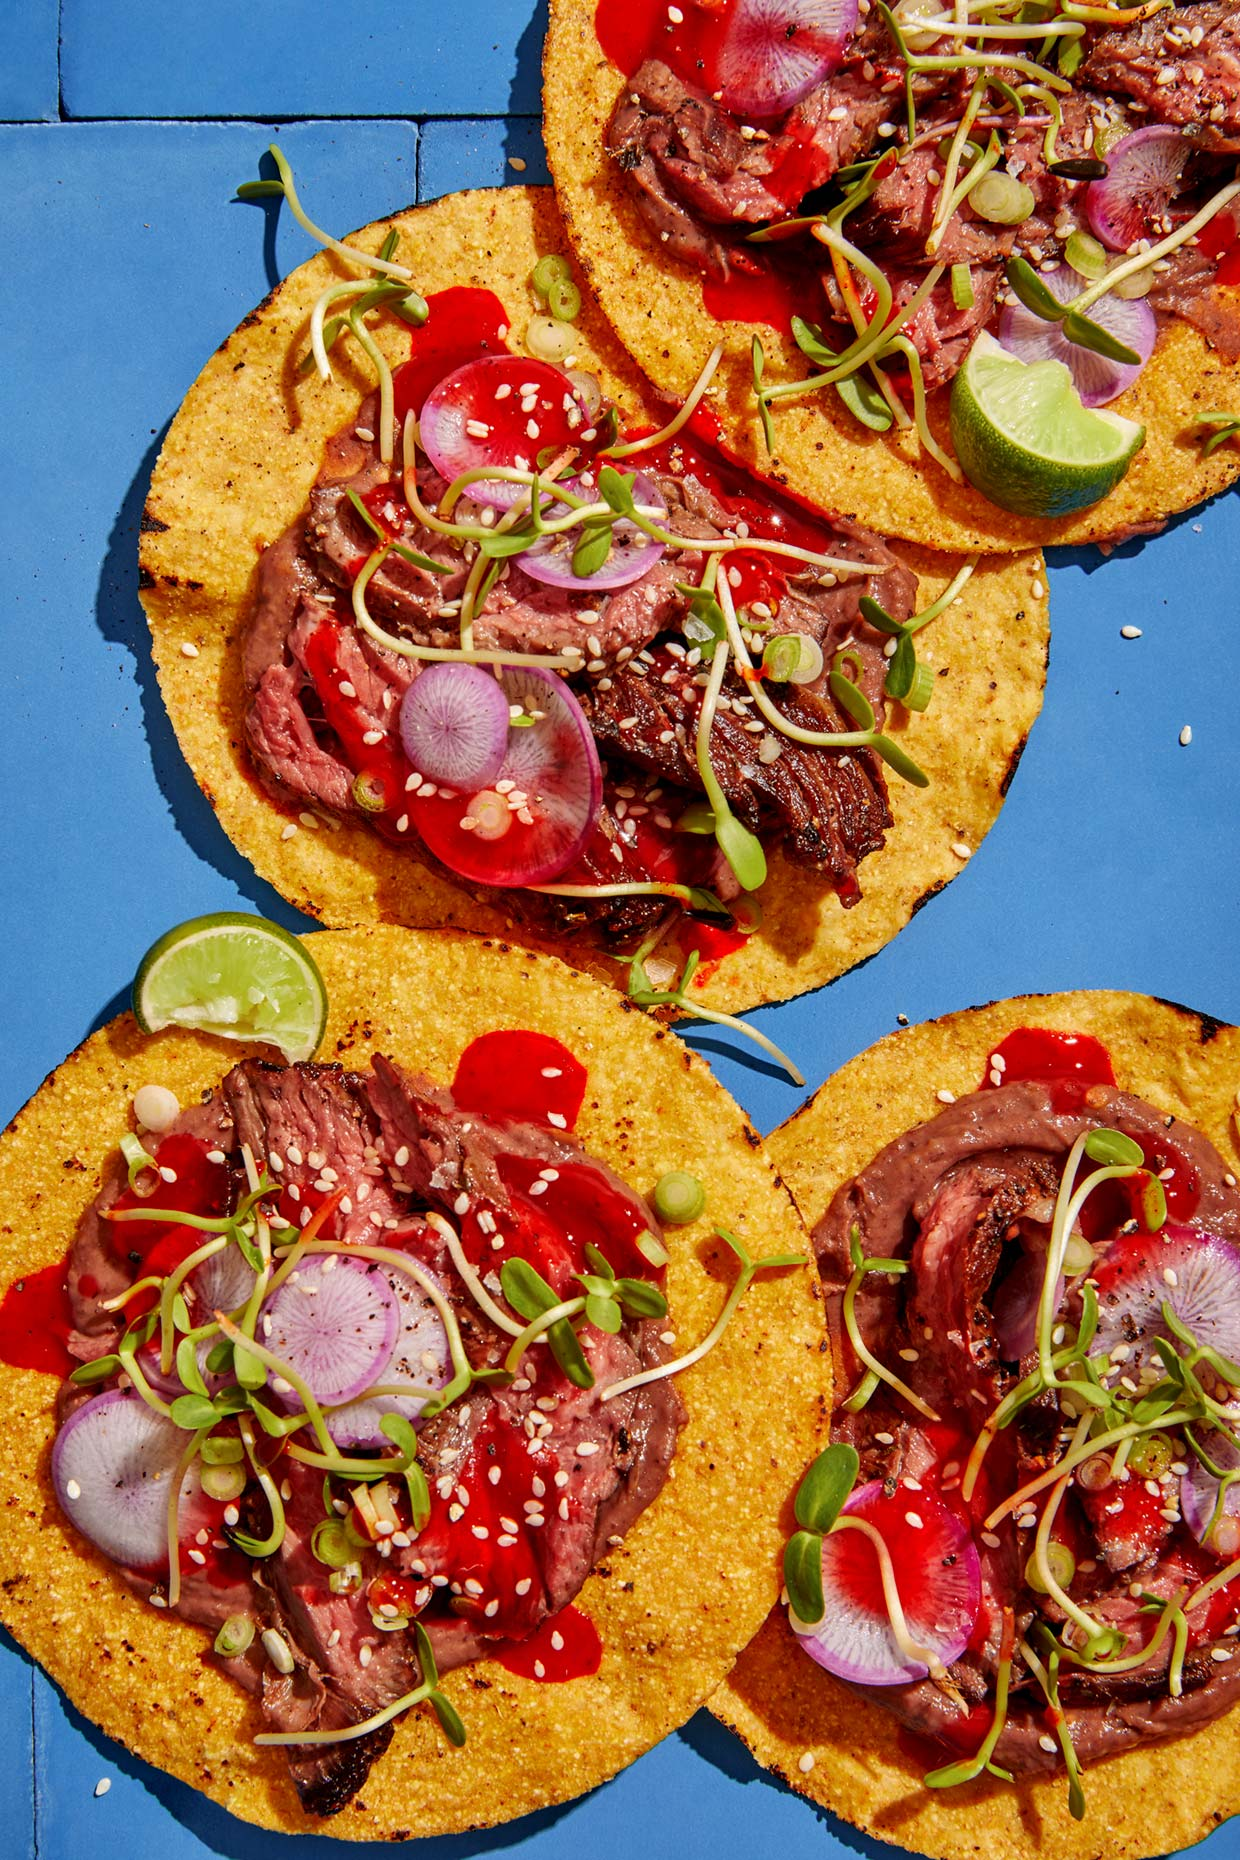 Tostadas by Teri Lyn Fisher Food Photographer